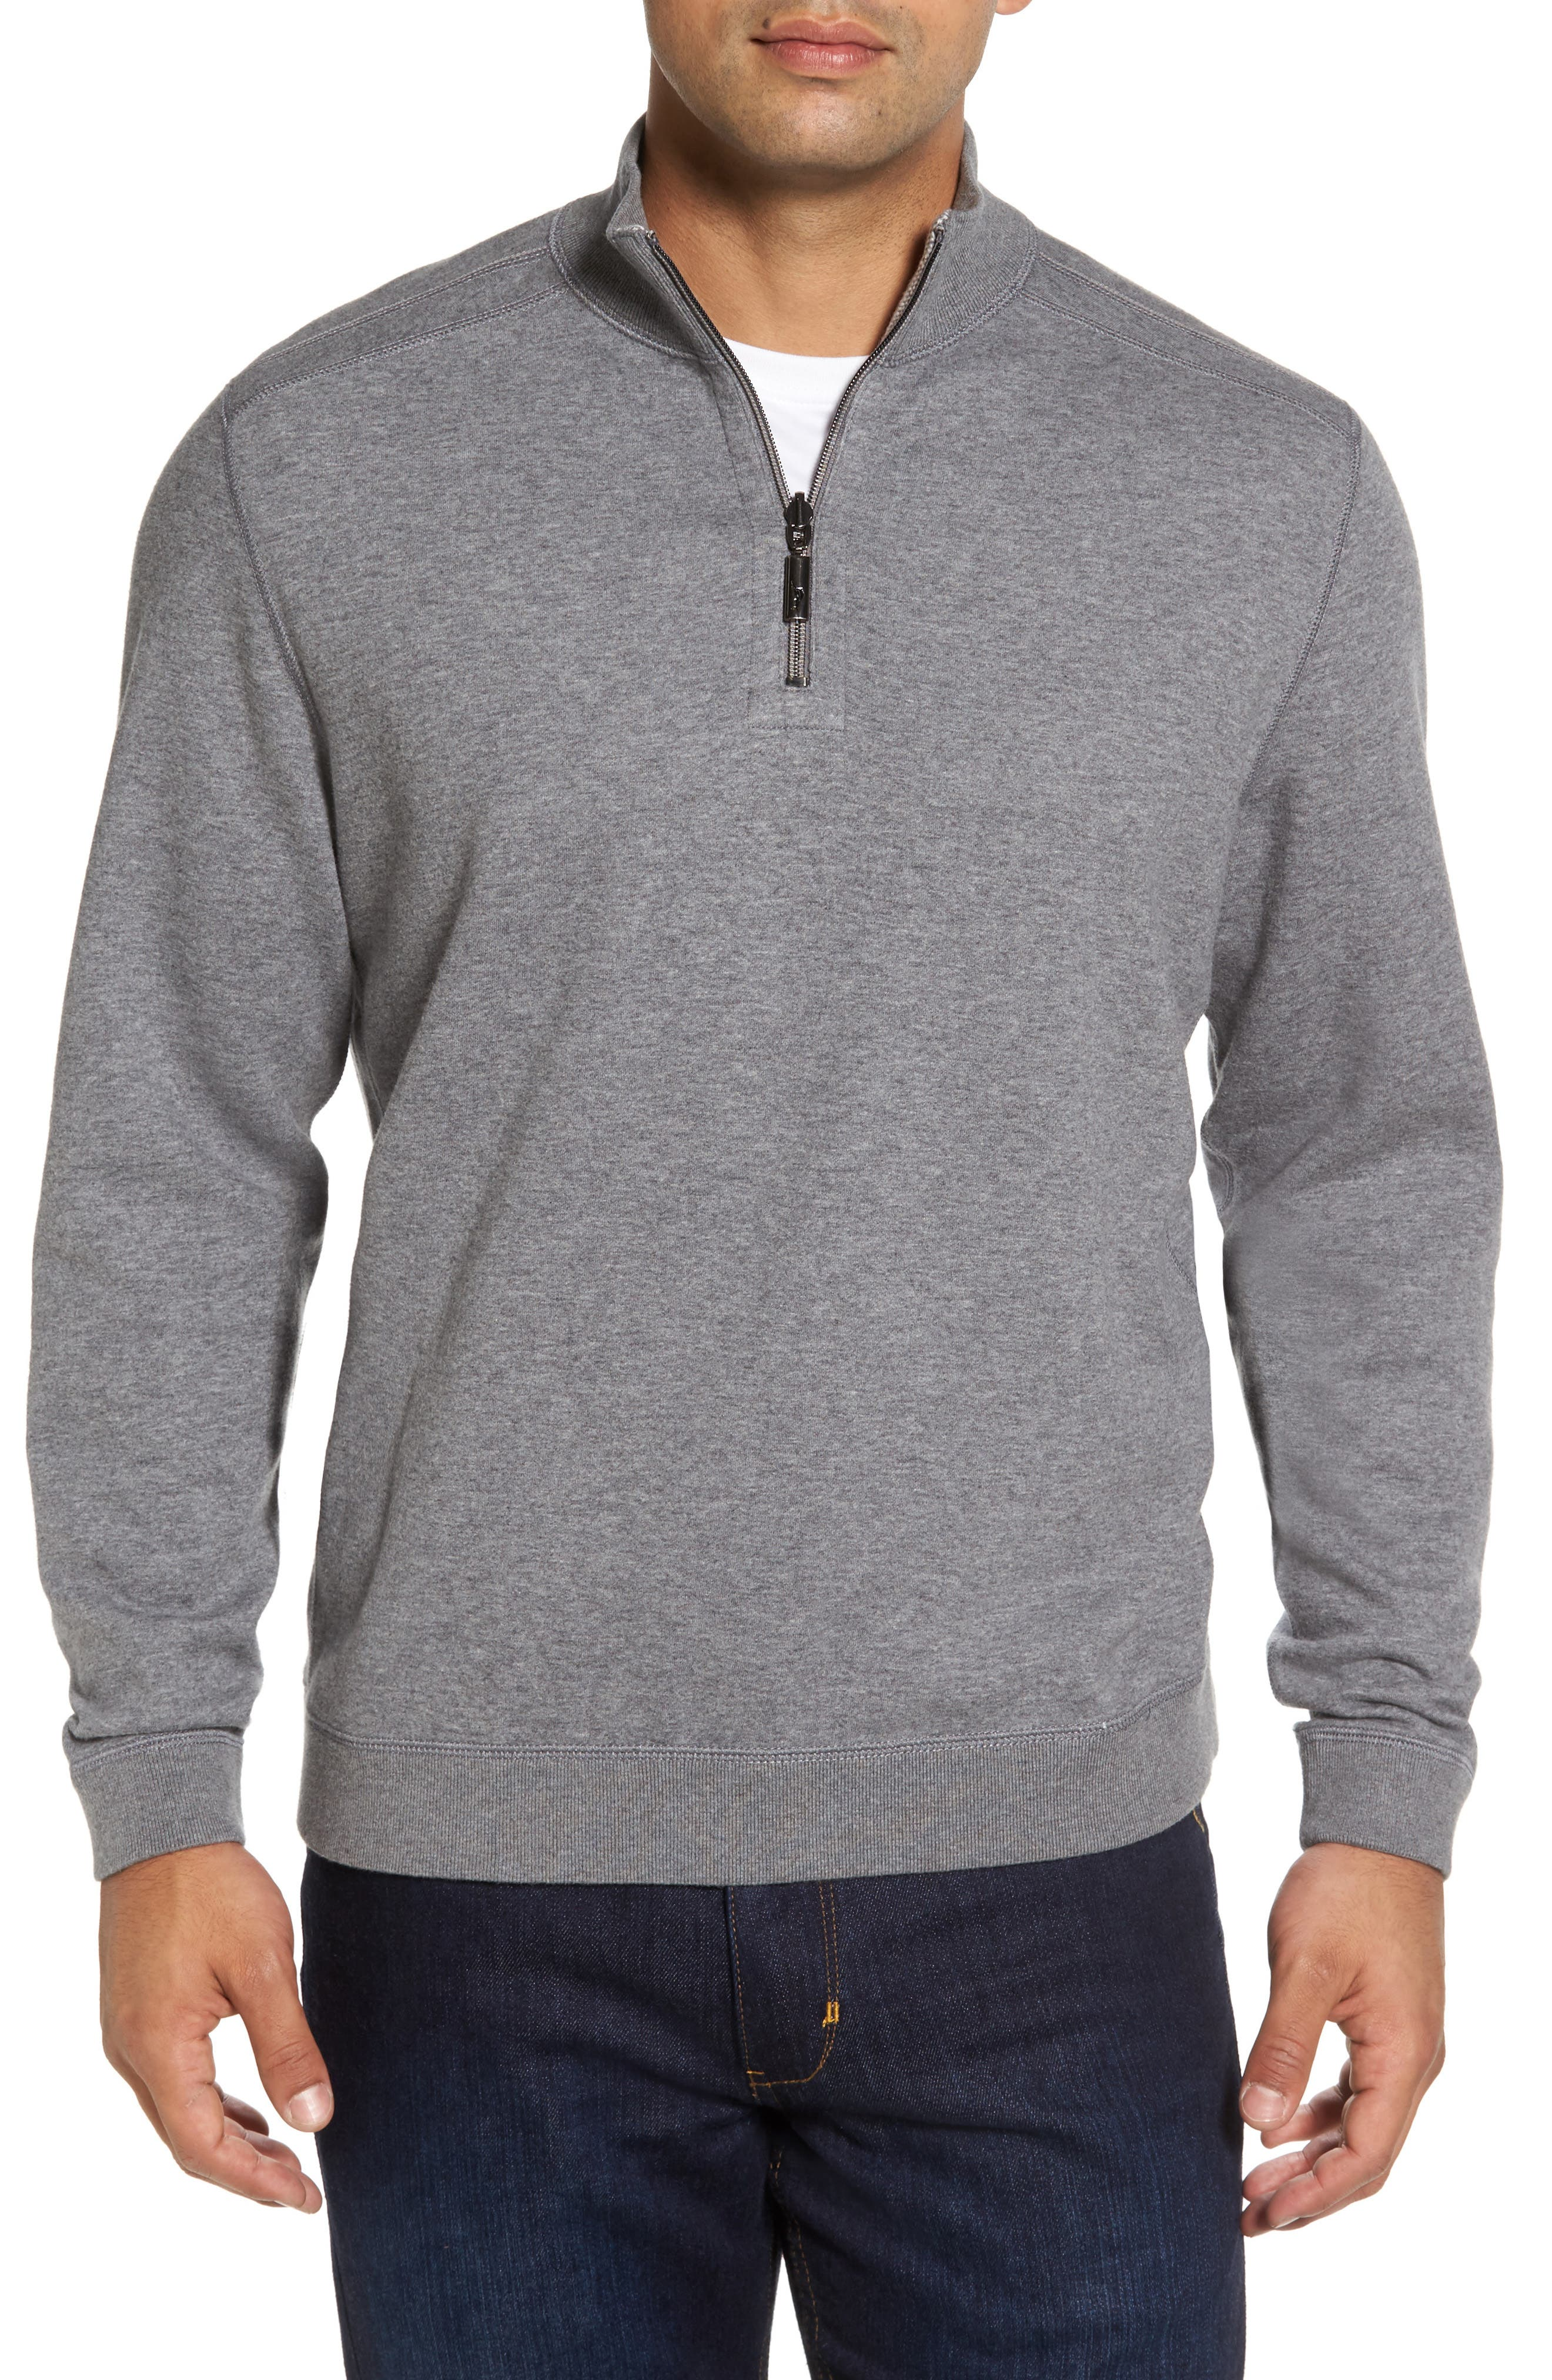 Alternate Image 1 Selected - Tommy Bahama Flip Drive Quarter Zip Pullover